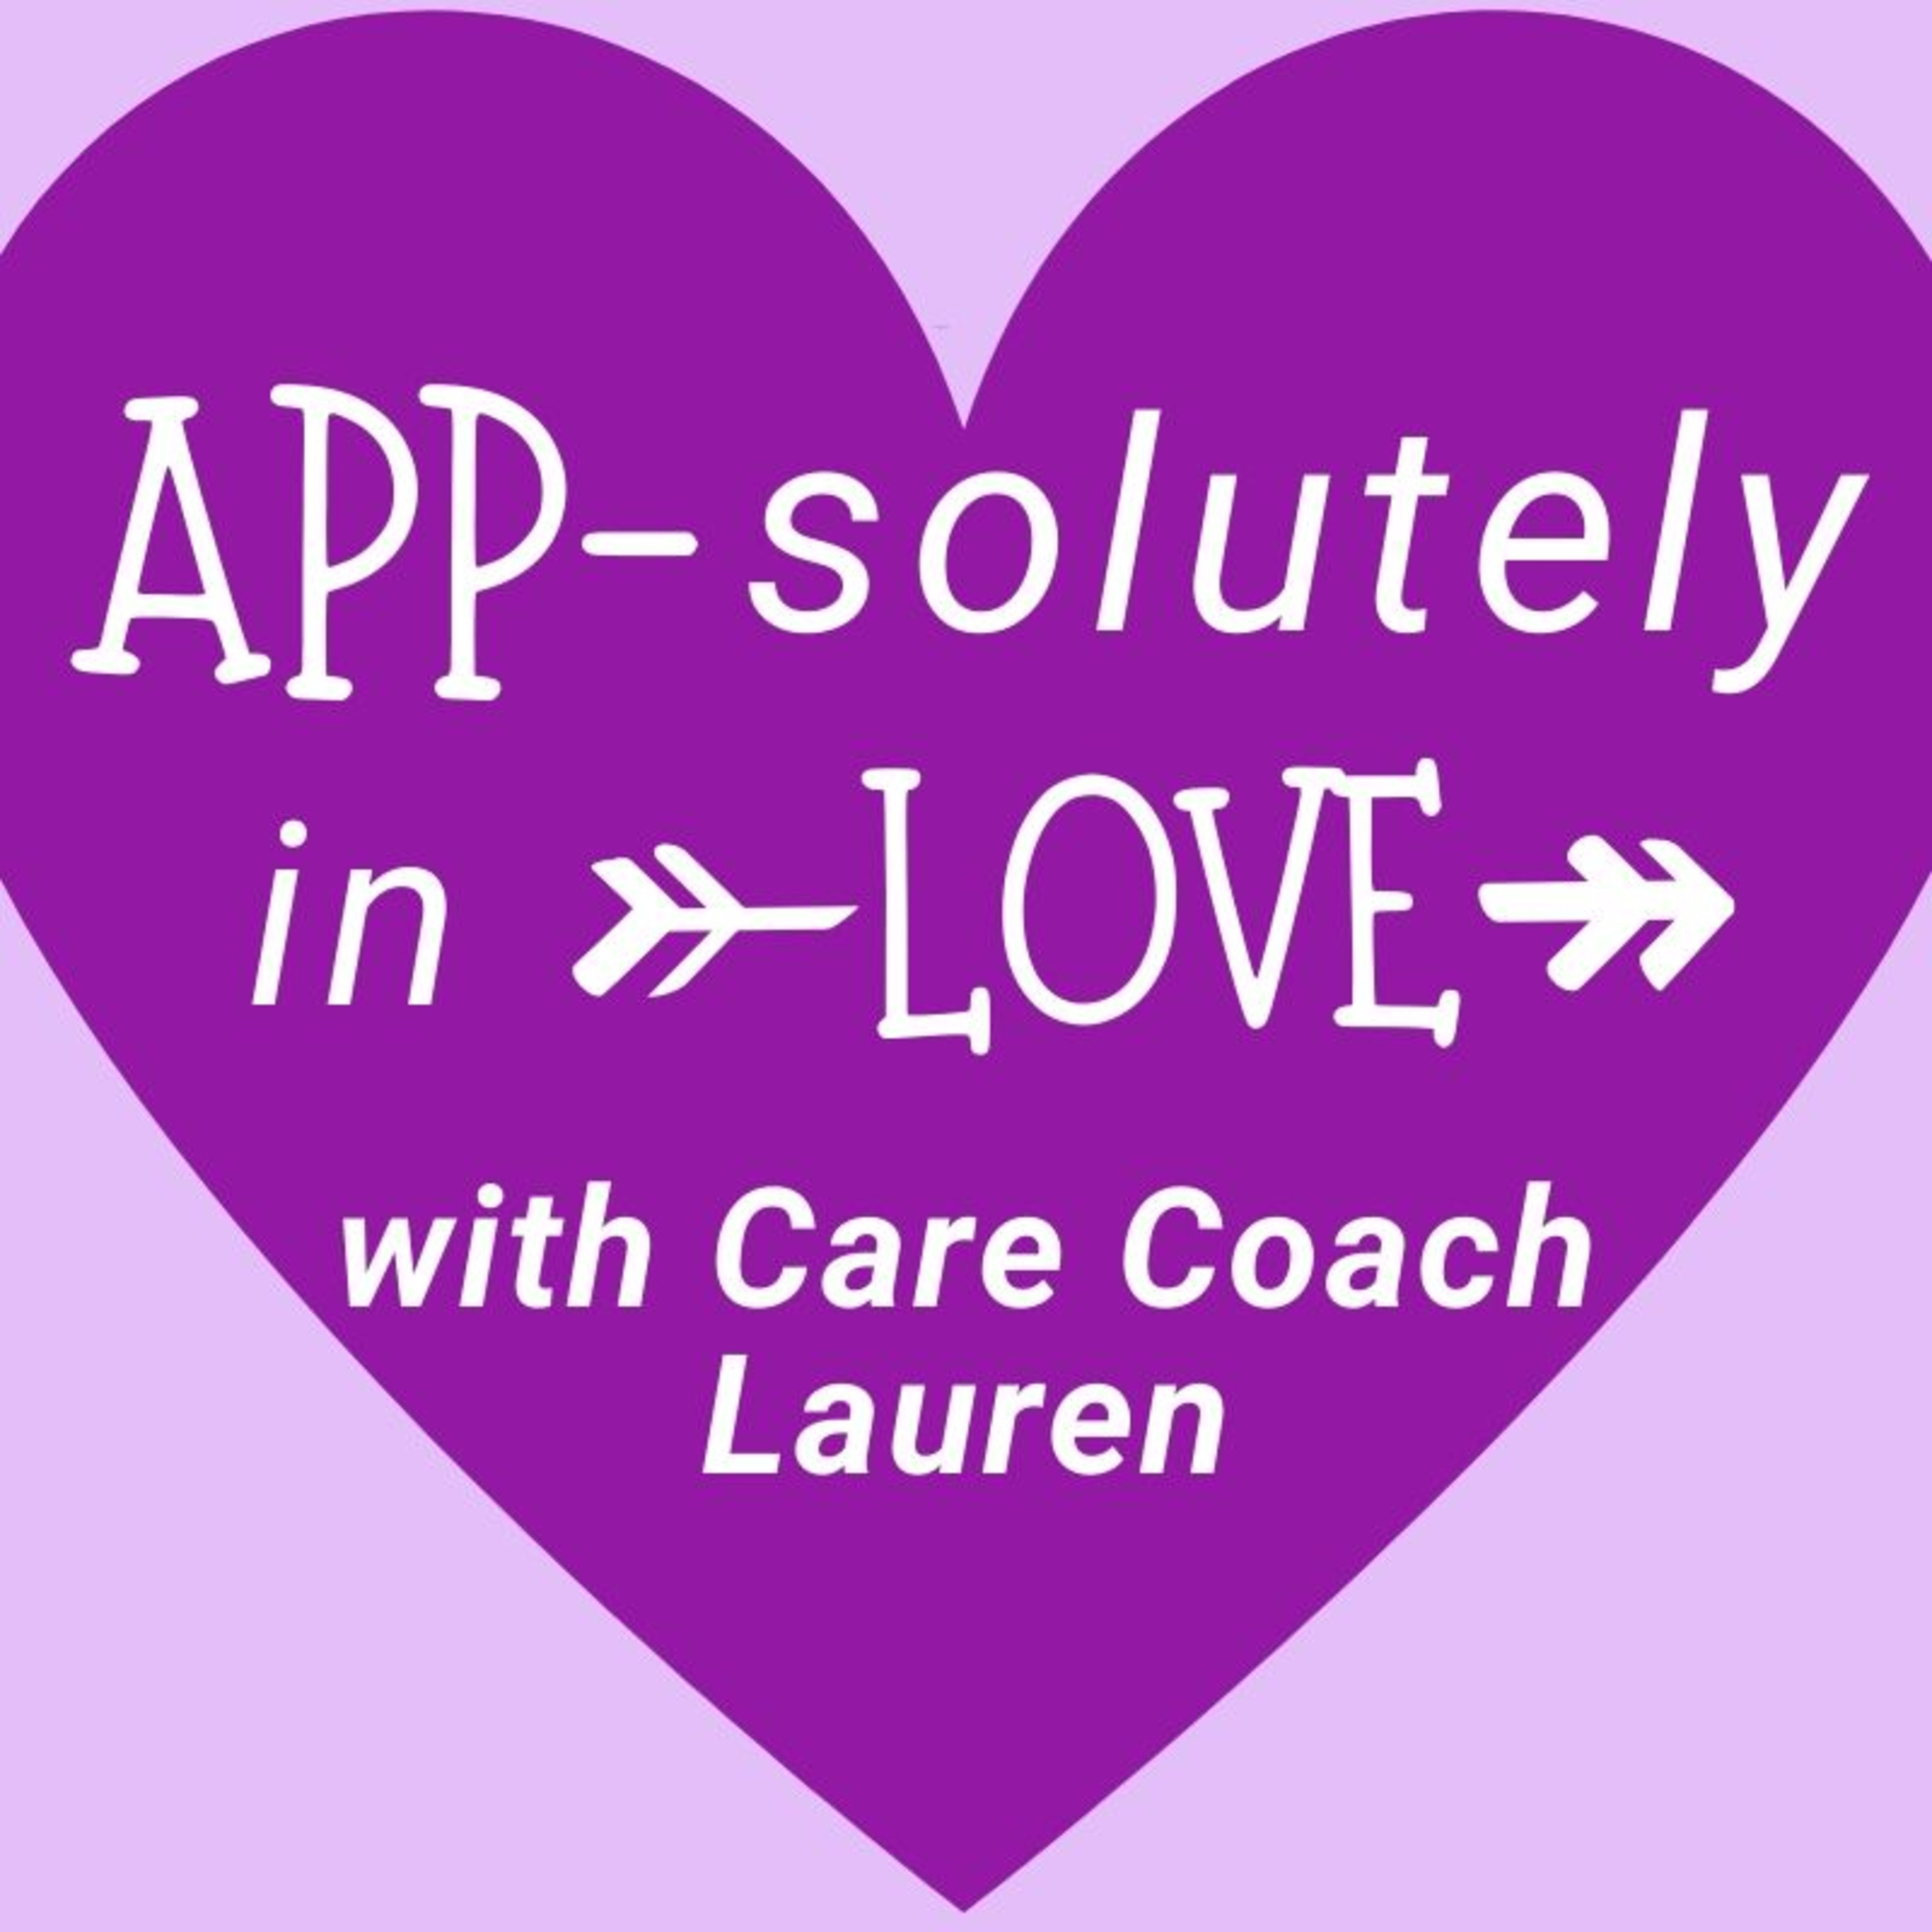 Welcome to the App-solutely in Love Podcast!